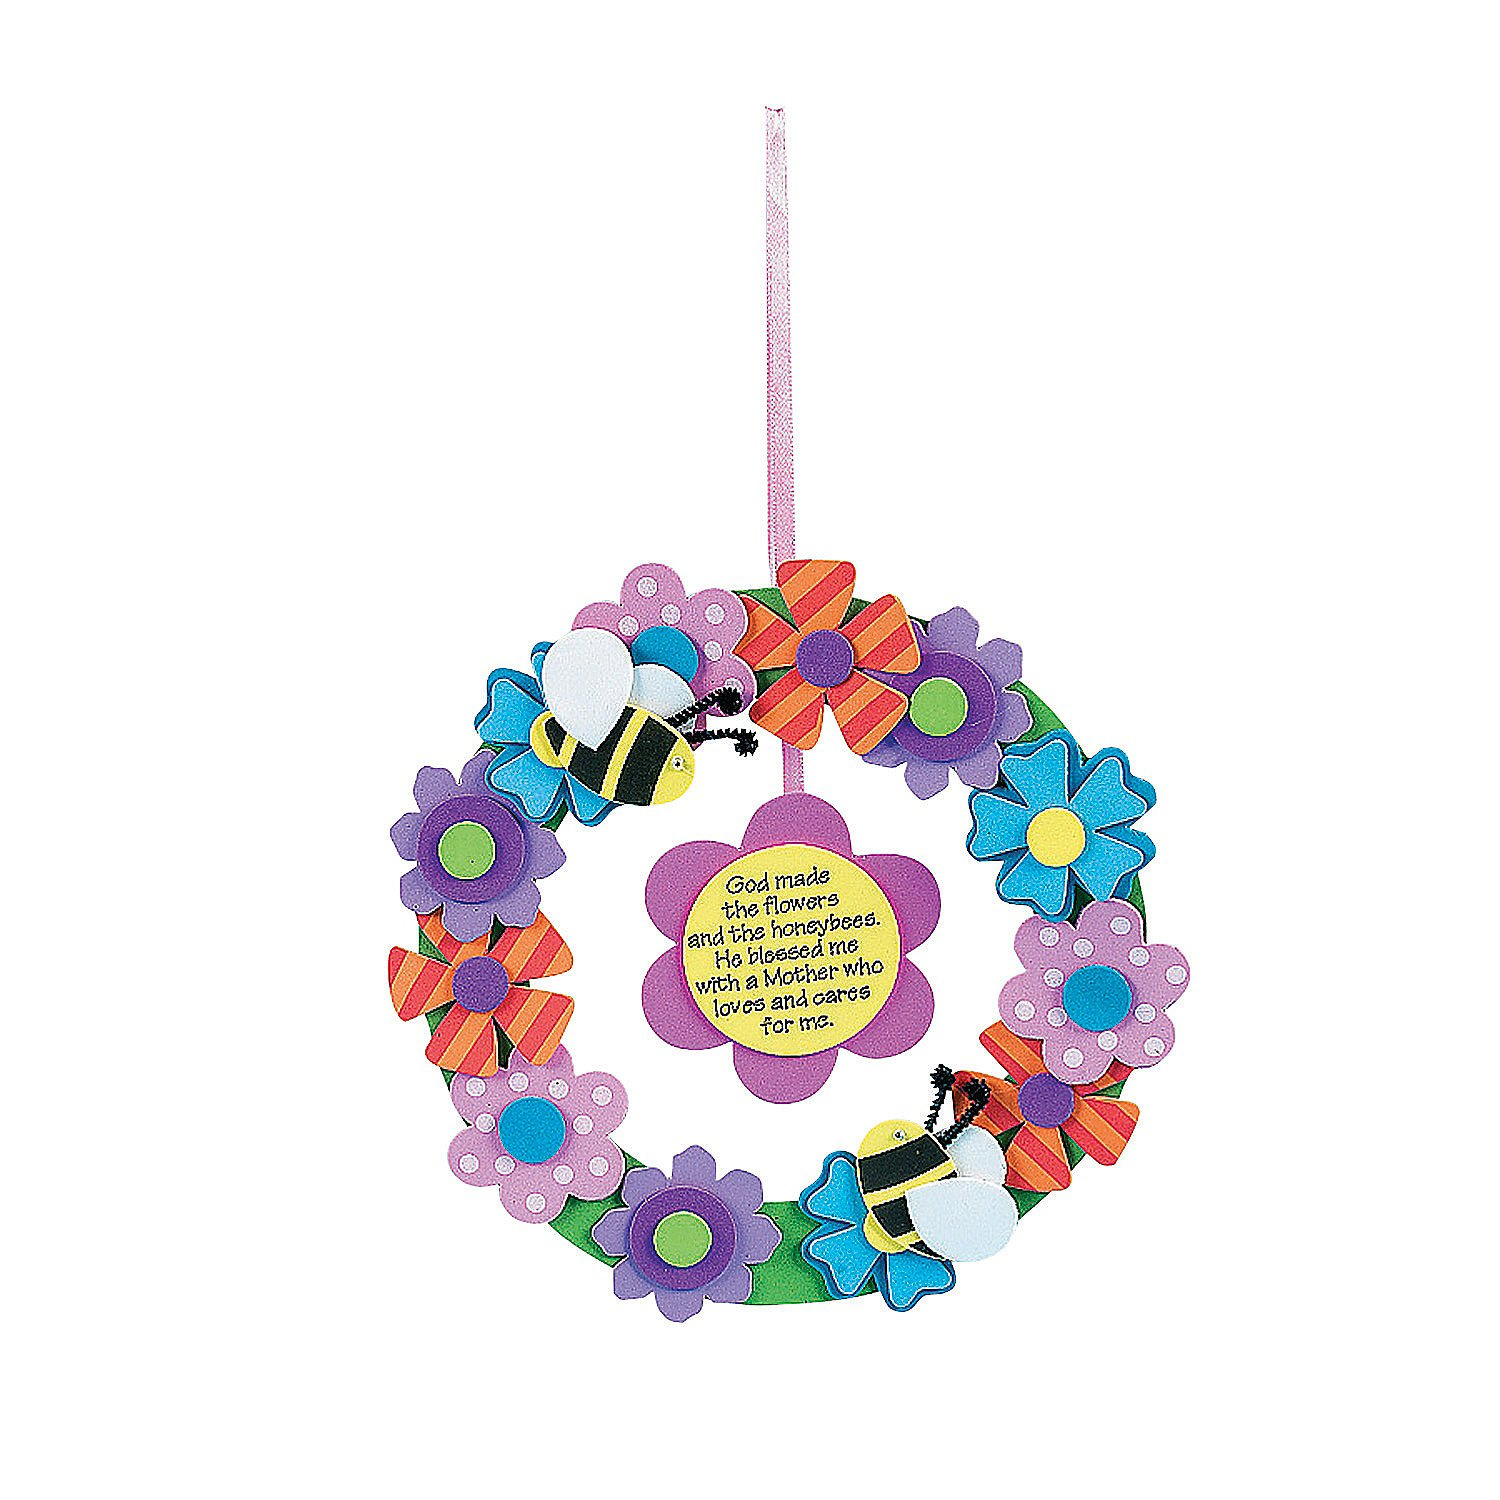 Fun-Express--Foam-Flower-Wreath-for-Mom-Craft-Kit-for-Mother-s-Day--Craft-Kits--Hanging-Decor-Craft-Kits--Wreath-Craft-Kits--Mother-s-Day--12-Pieces